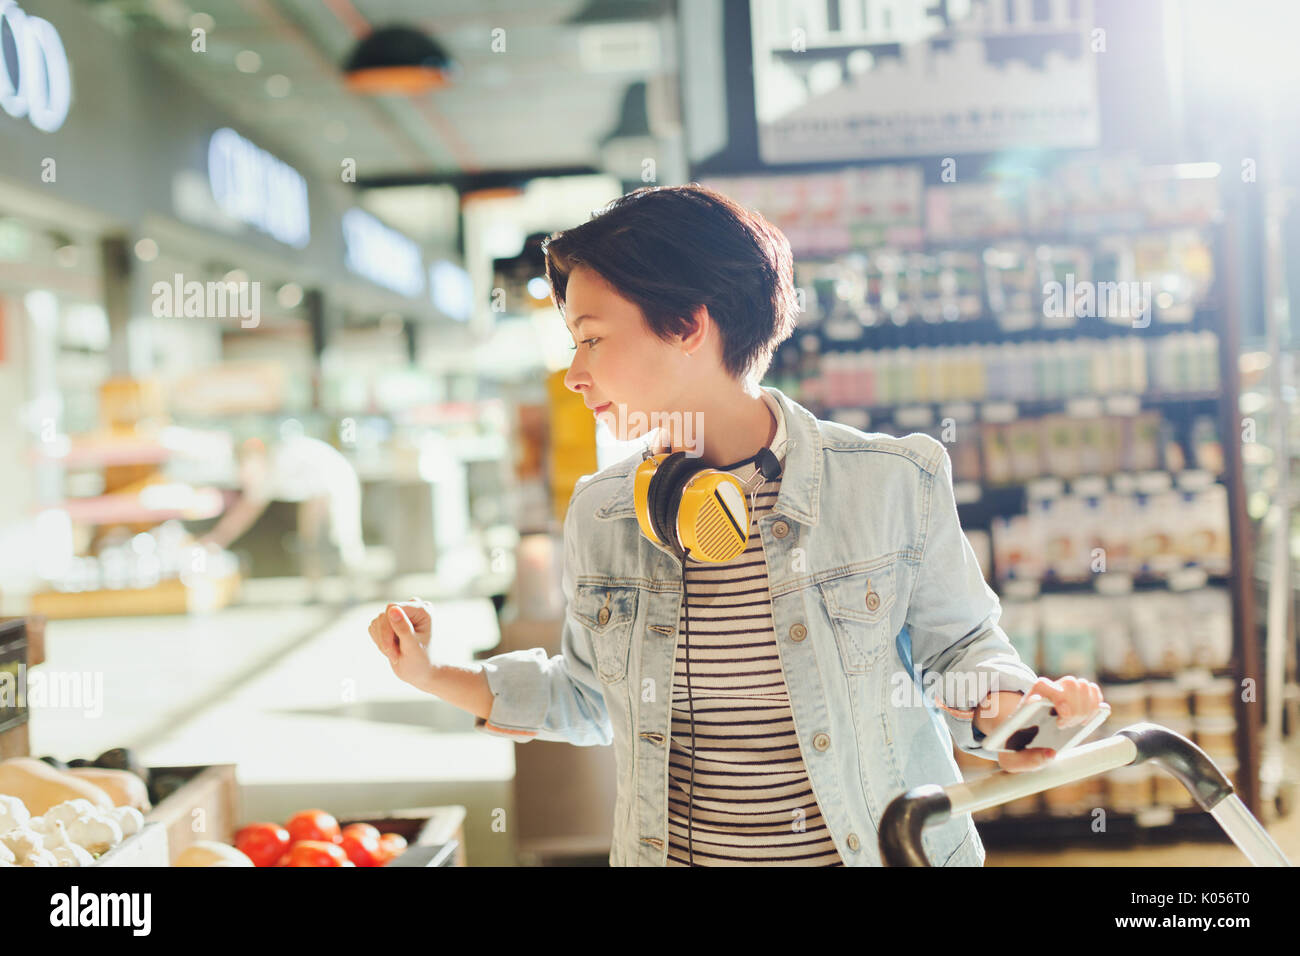 Young woman with headphones browsing, grocery shopping in market - Stock Image